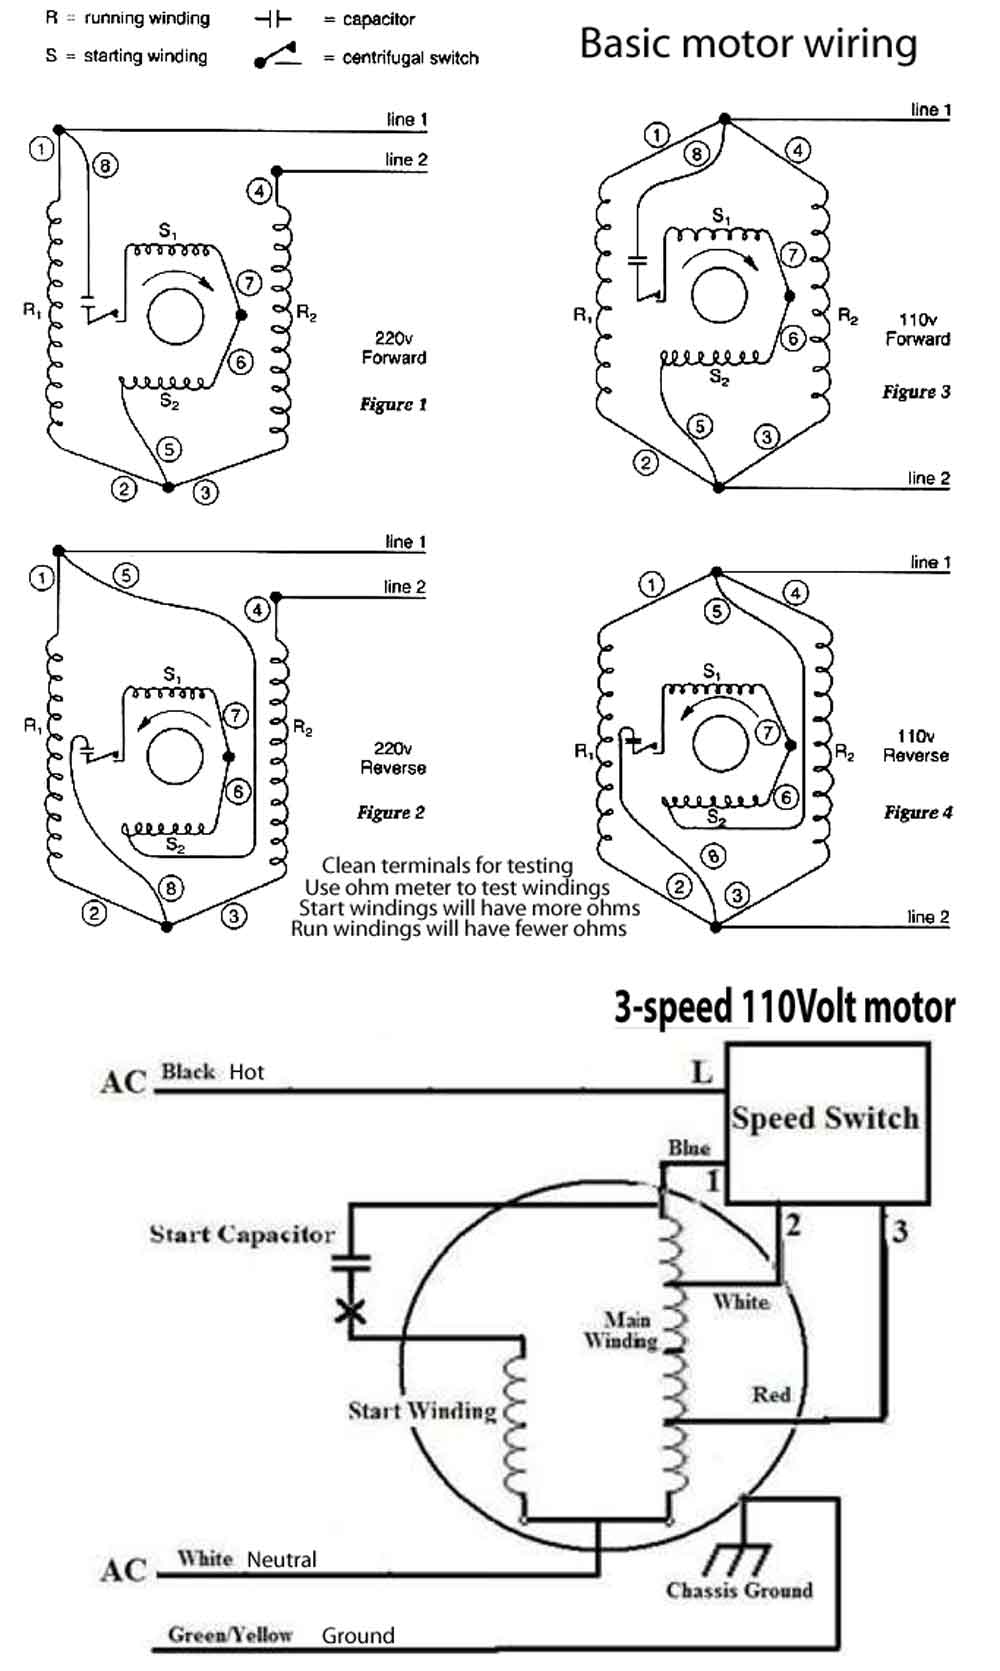 Three Speed Fan Wiring Diagram For Ceiling With Fans Guide And Hunter How To Wire 3 Switch Rh Waterheatertimer Org